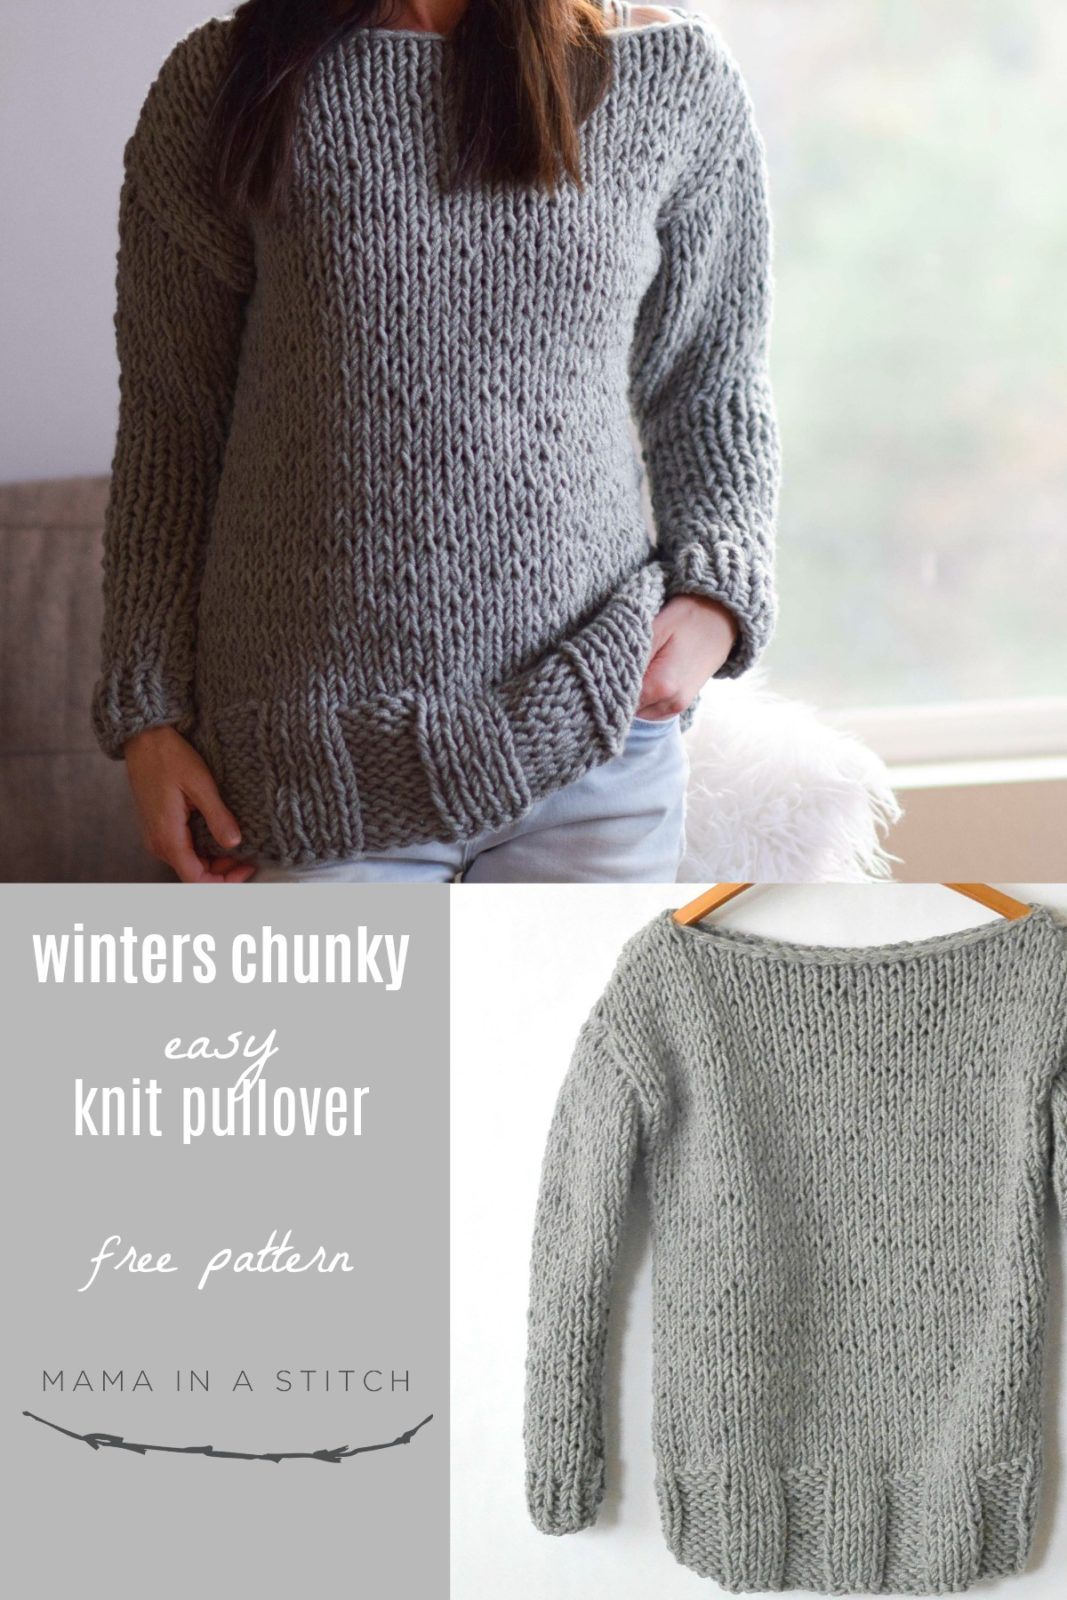 Free Bulky Knitting Patterns Winters Chunky Easy Knit Pullover Pattern Mama In A Stitch